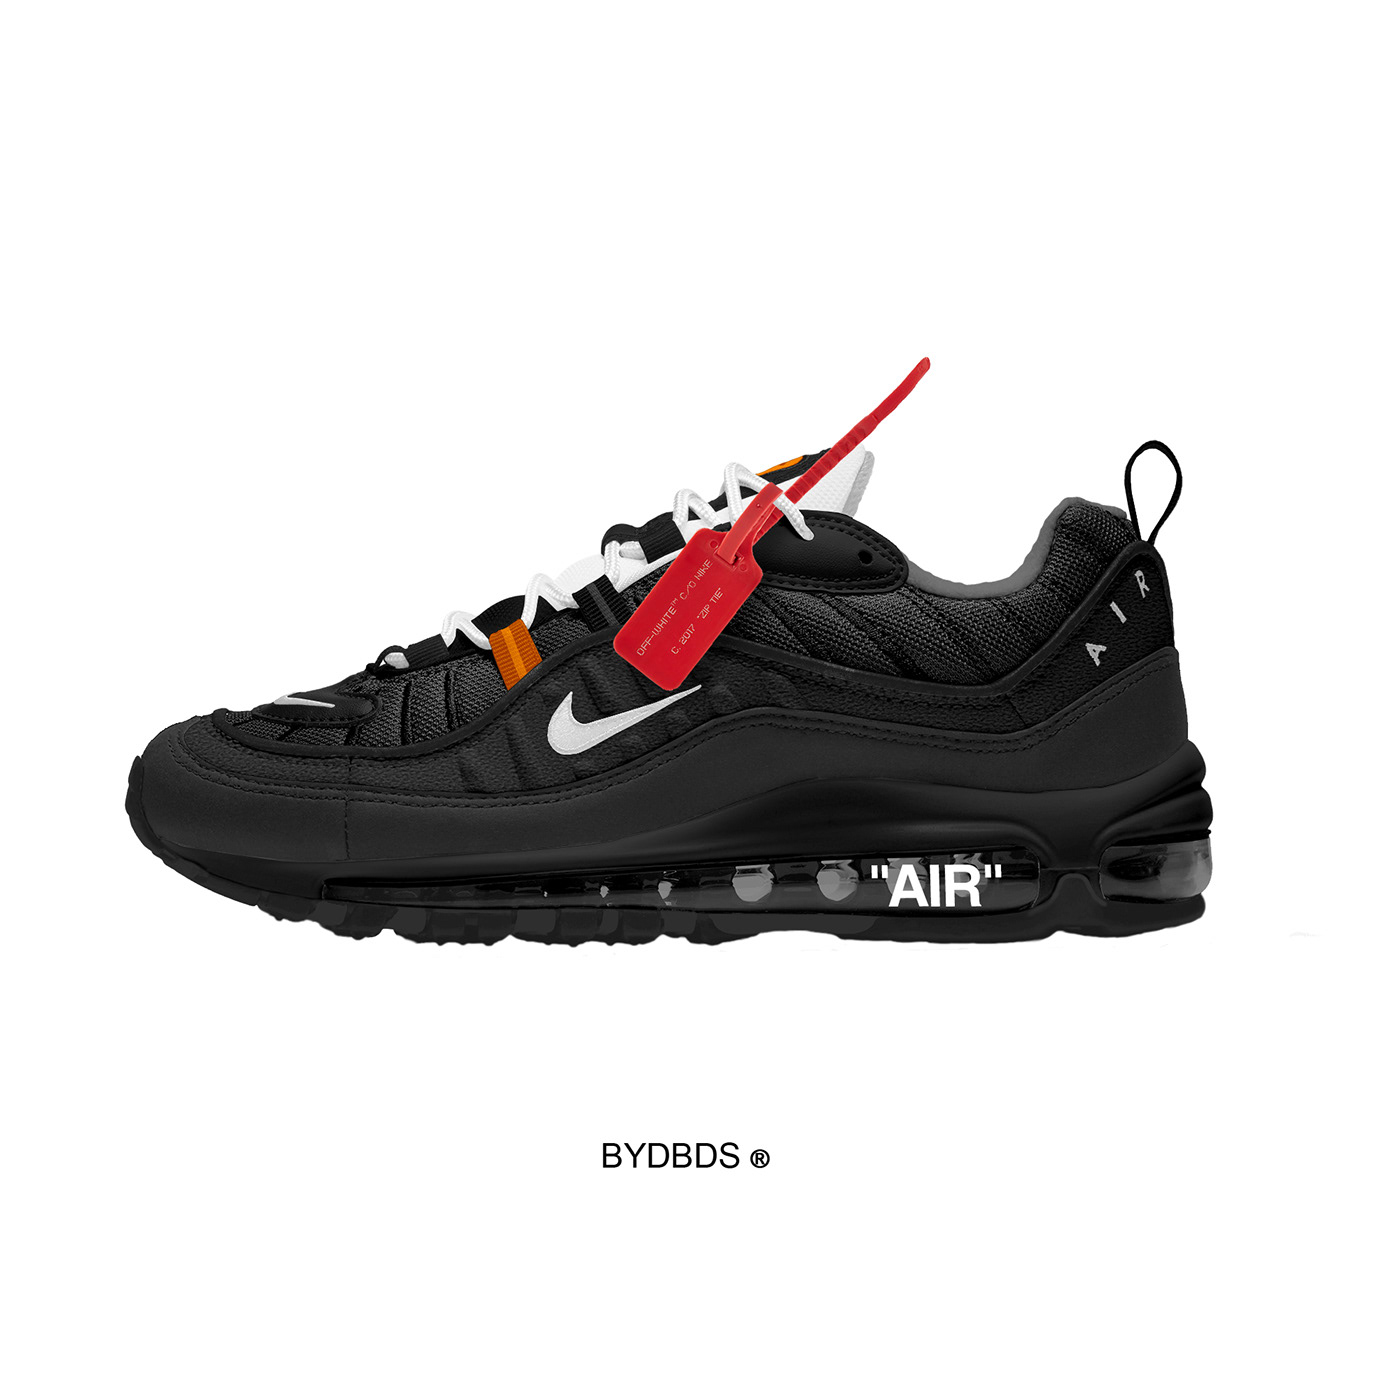 Nike Air Max 98 x Off-White ™ Vlone Concepts by DBDS on Behance